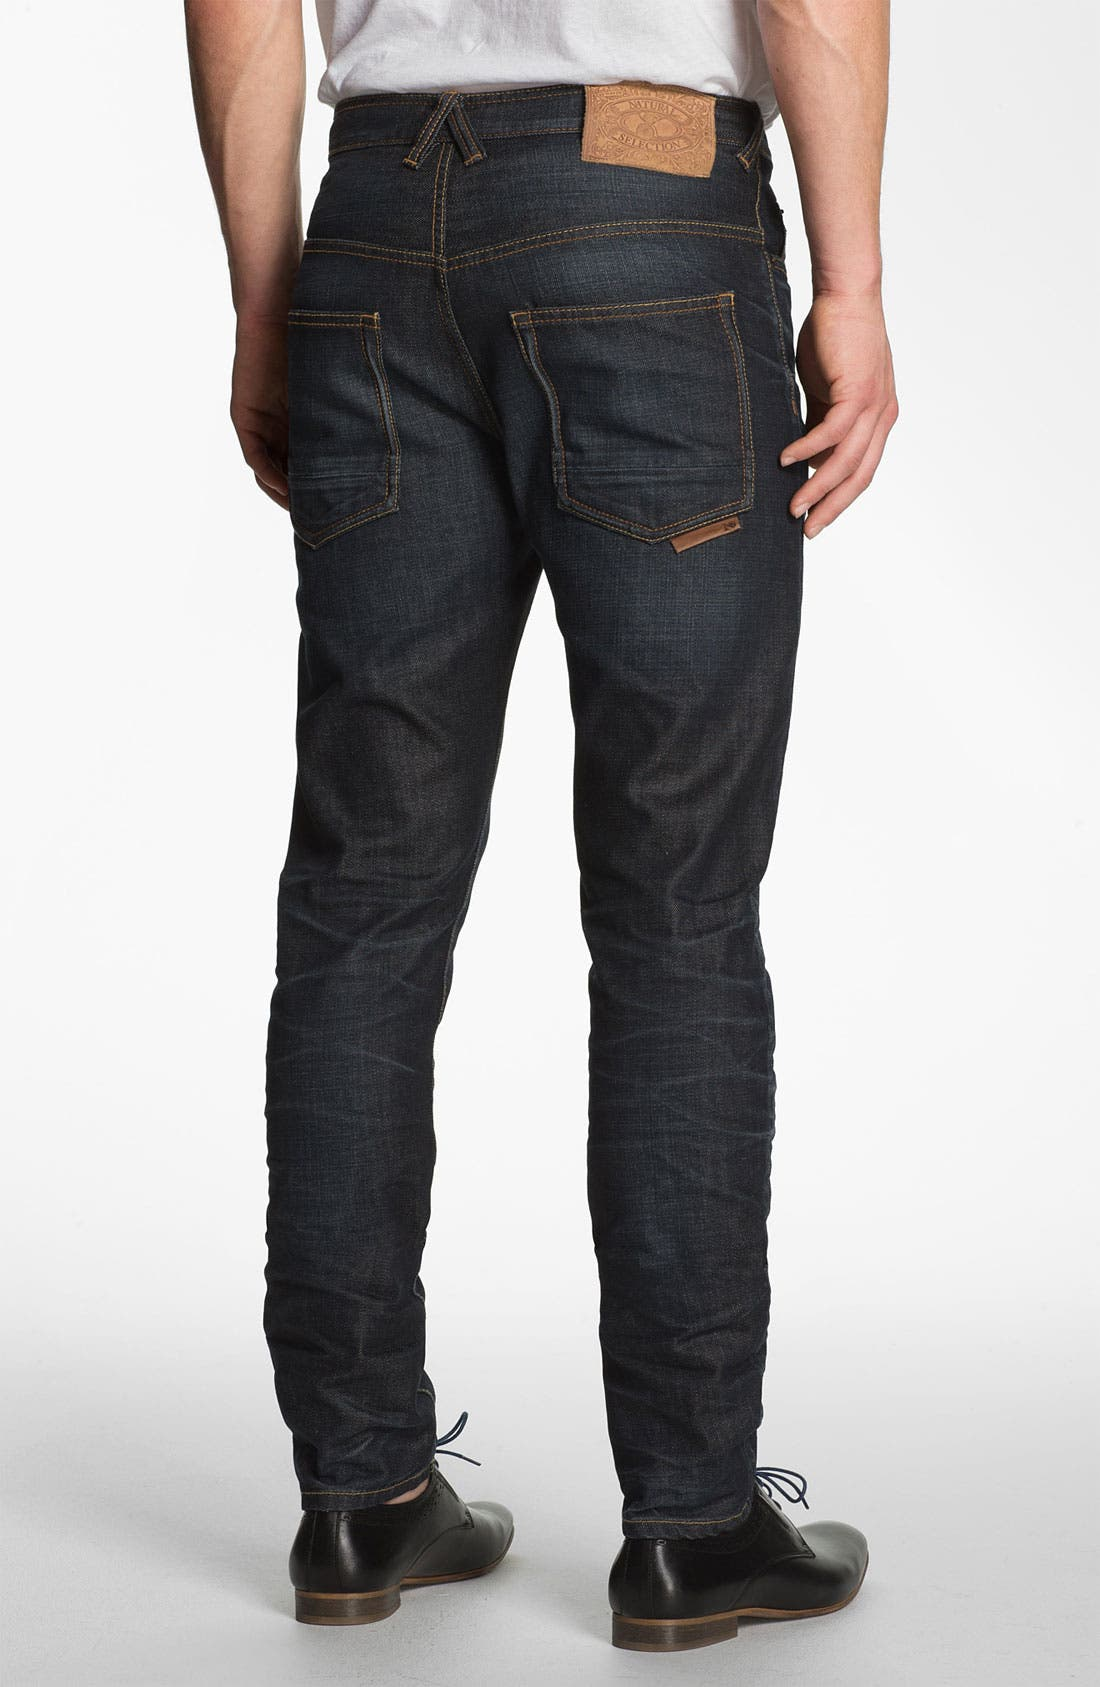 Main Image - Natural Selection Denim 'Bruised' Slim Carrot Fit Jeans (Blue Rain)